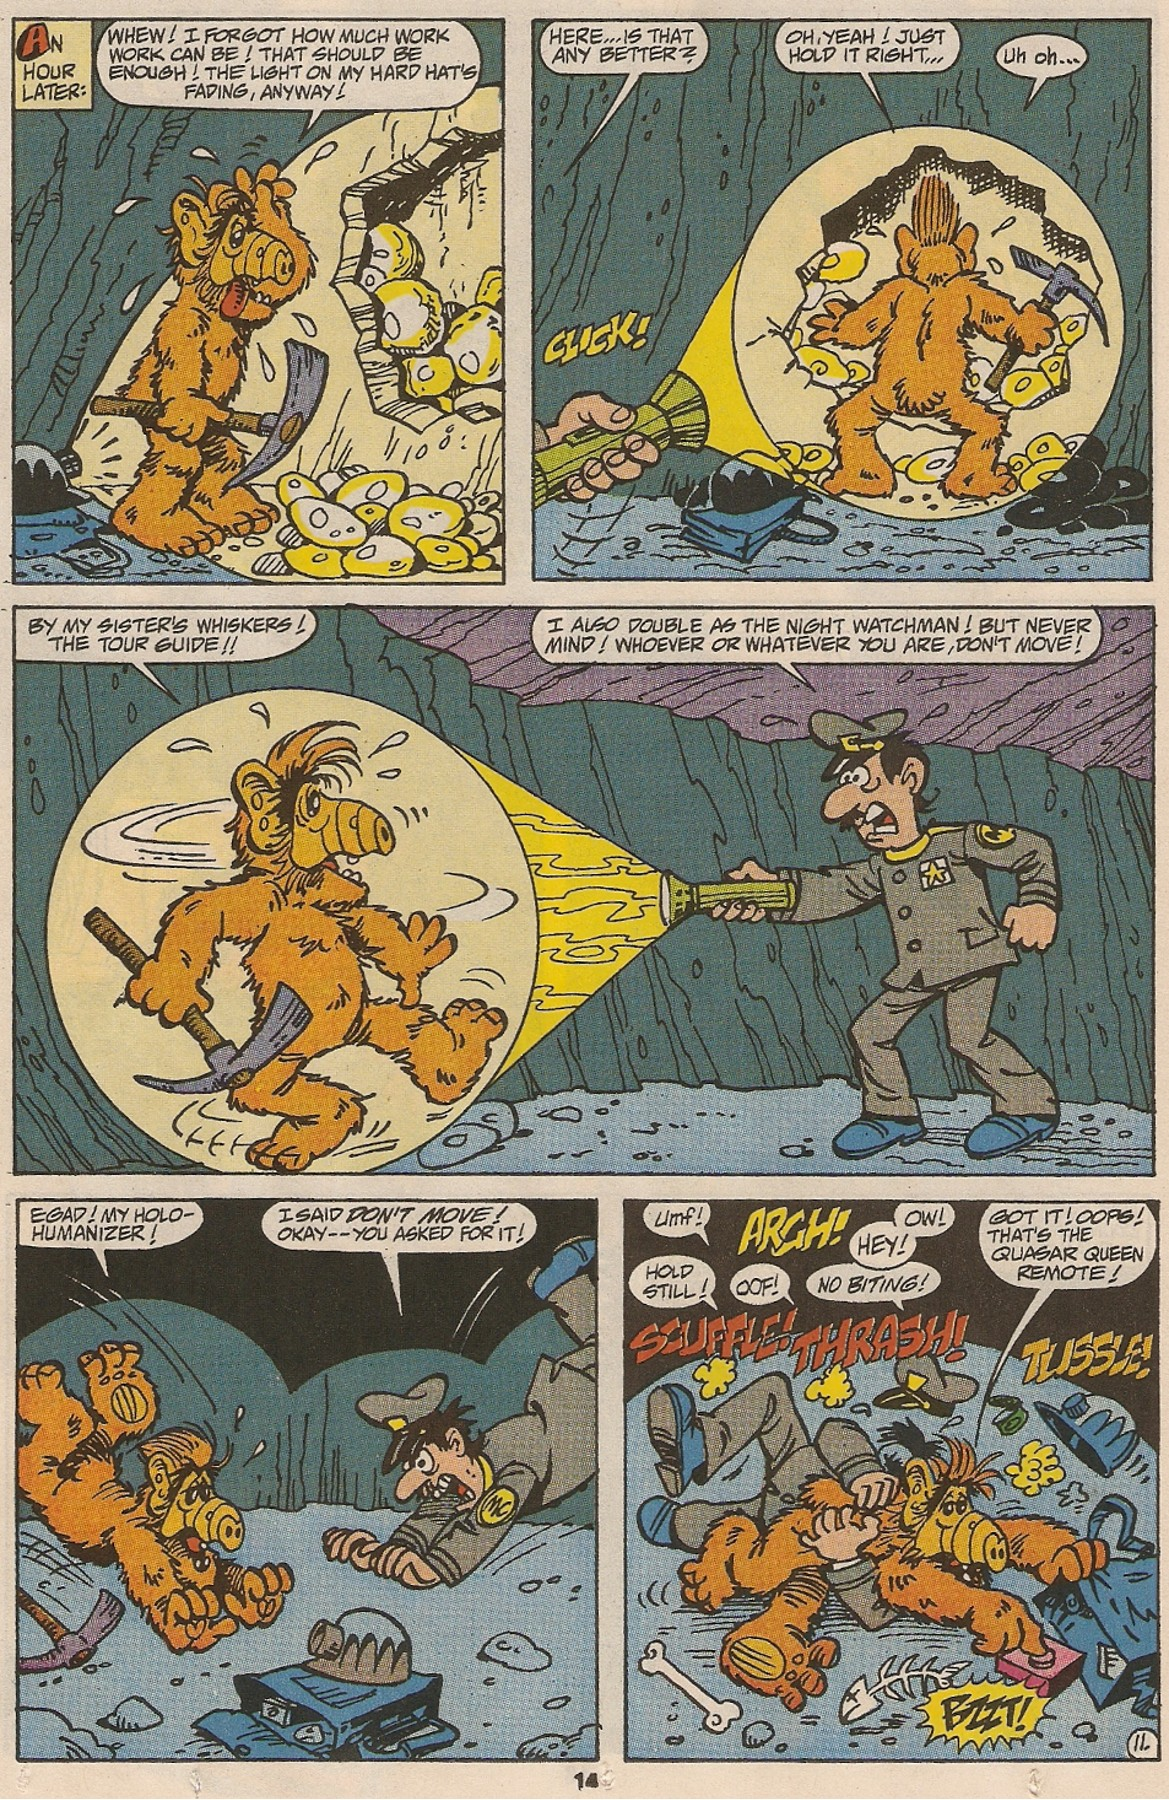 Read online ALF comic -  Issue #47 - 16